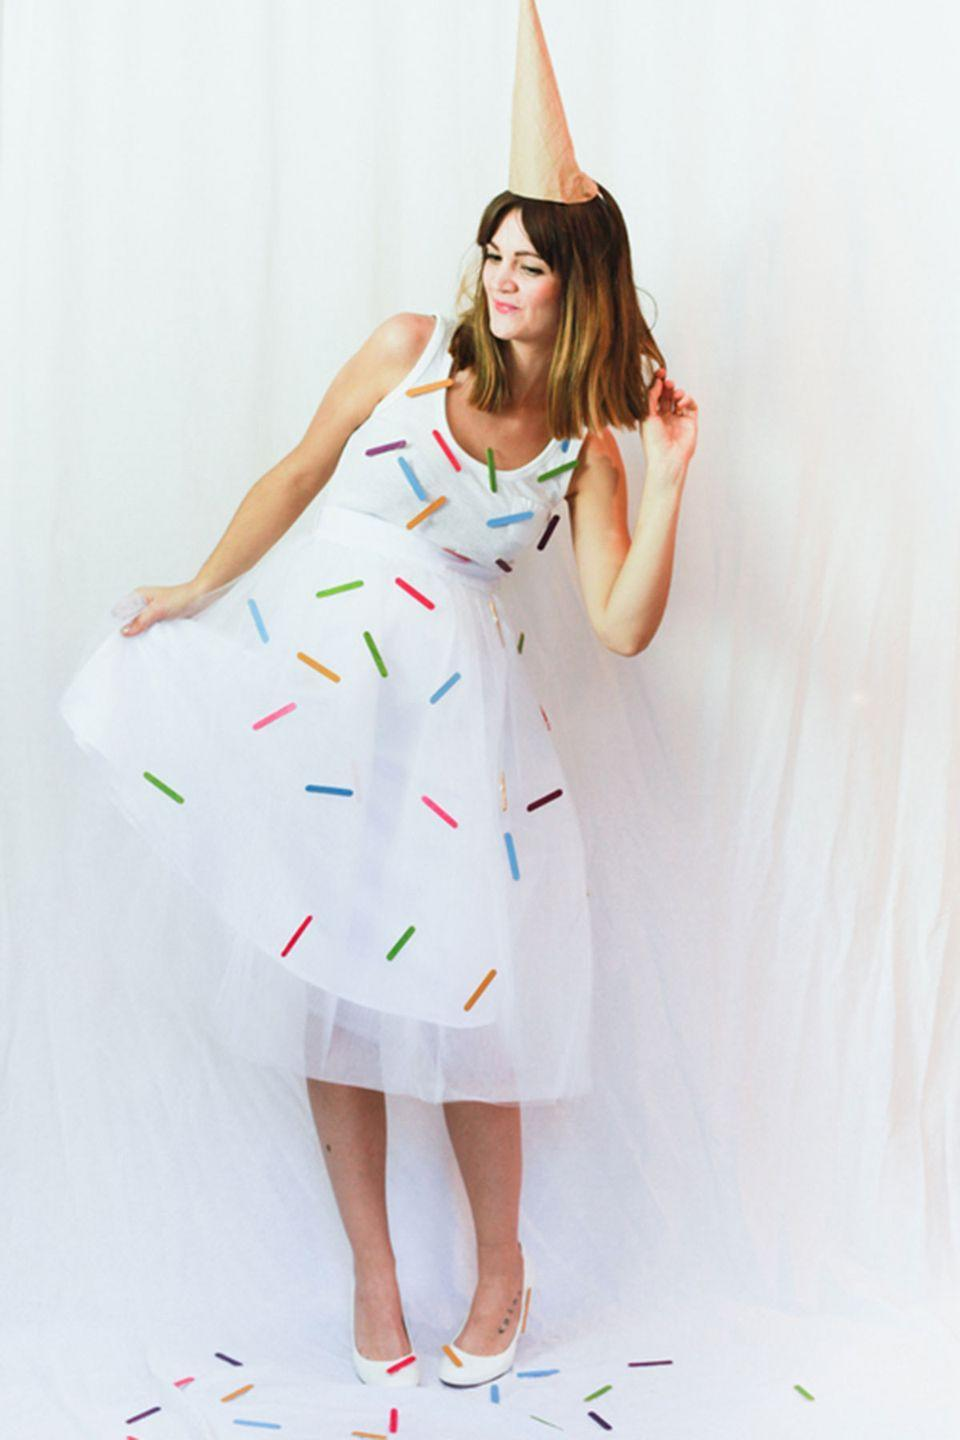 """<p>I scream, you scream, we all scream for this sweet costume idea.</p><p><strong>Get the tutorial at <a href=""""http://treasuresandtravelsblog.com/blog/2014/10/24/halloween-costumes-ice-cream-cotton-candy"""" rel=""""nofollow noopener"""" target=""""_blank"""" data-ylk=""""slk:Treasures and Travels"""" class=""""link rapid-noclick-resp"""">Treasures and Travels</a>. </strong></p><p><strong><a class=""""link rapid-noclick-resp"""" href=""""https://www.amazon.com/Popsicle-Childrens-Handicrafts-Creative-Education/dp/B08Y5V42SW/ref=sr_1_3?crid=2LPPA0VJO7AT1&dchild=1&keywords=colored+popsicle+sticks&qid=1624891587&sprefix=colored+pop%2Caps%2C203&sr=8-3&tag=syn-yahoo-20&ascsubtag=%5Bartid%7C10050.g.4571%5Bsrc%7Cyahoo-us"""" rel=""""nofollow noopener"""" target=""""_blank"""" data-ylk=""""slk:SHOP CRAFT STICKS"""">SHOP CRAFT STICKS</a><br></strong></p>"""